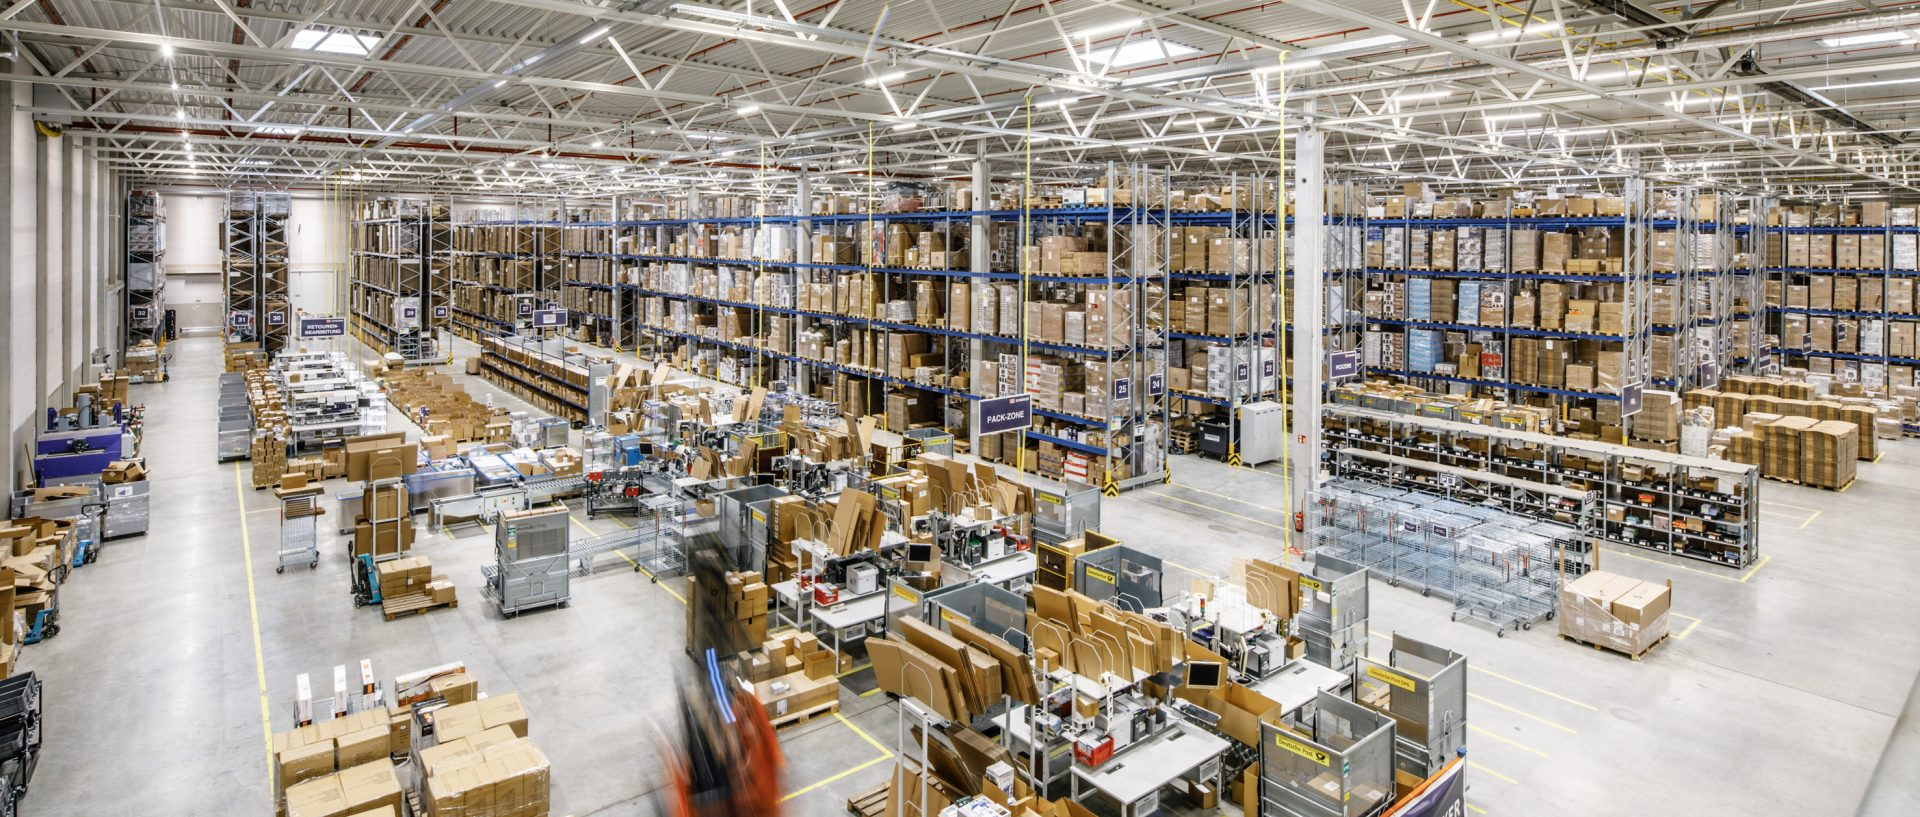 E-commerce warehouse in Augsburg, Germany